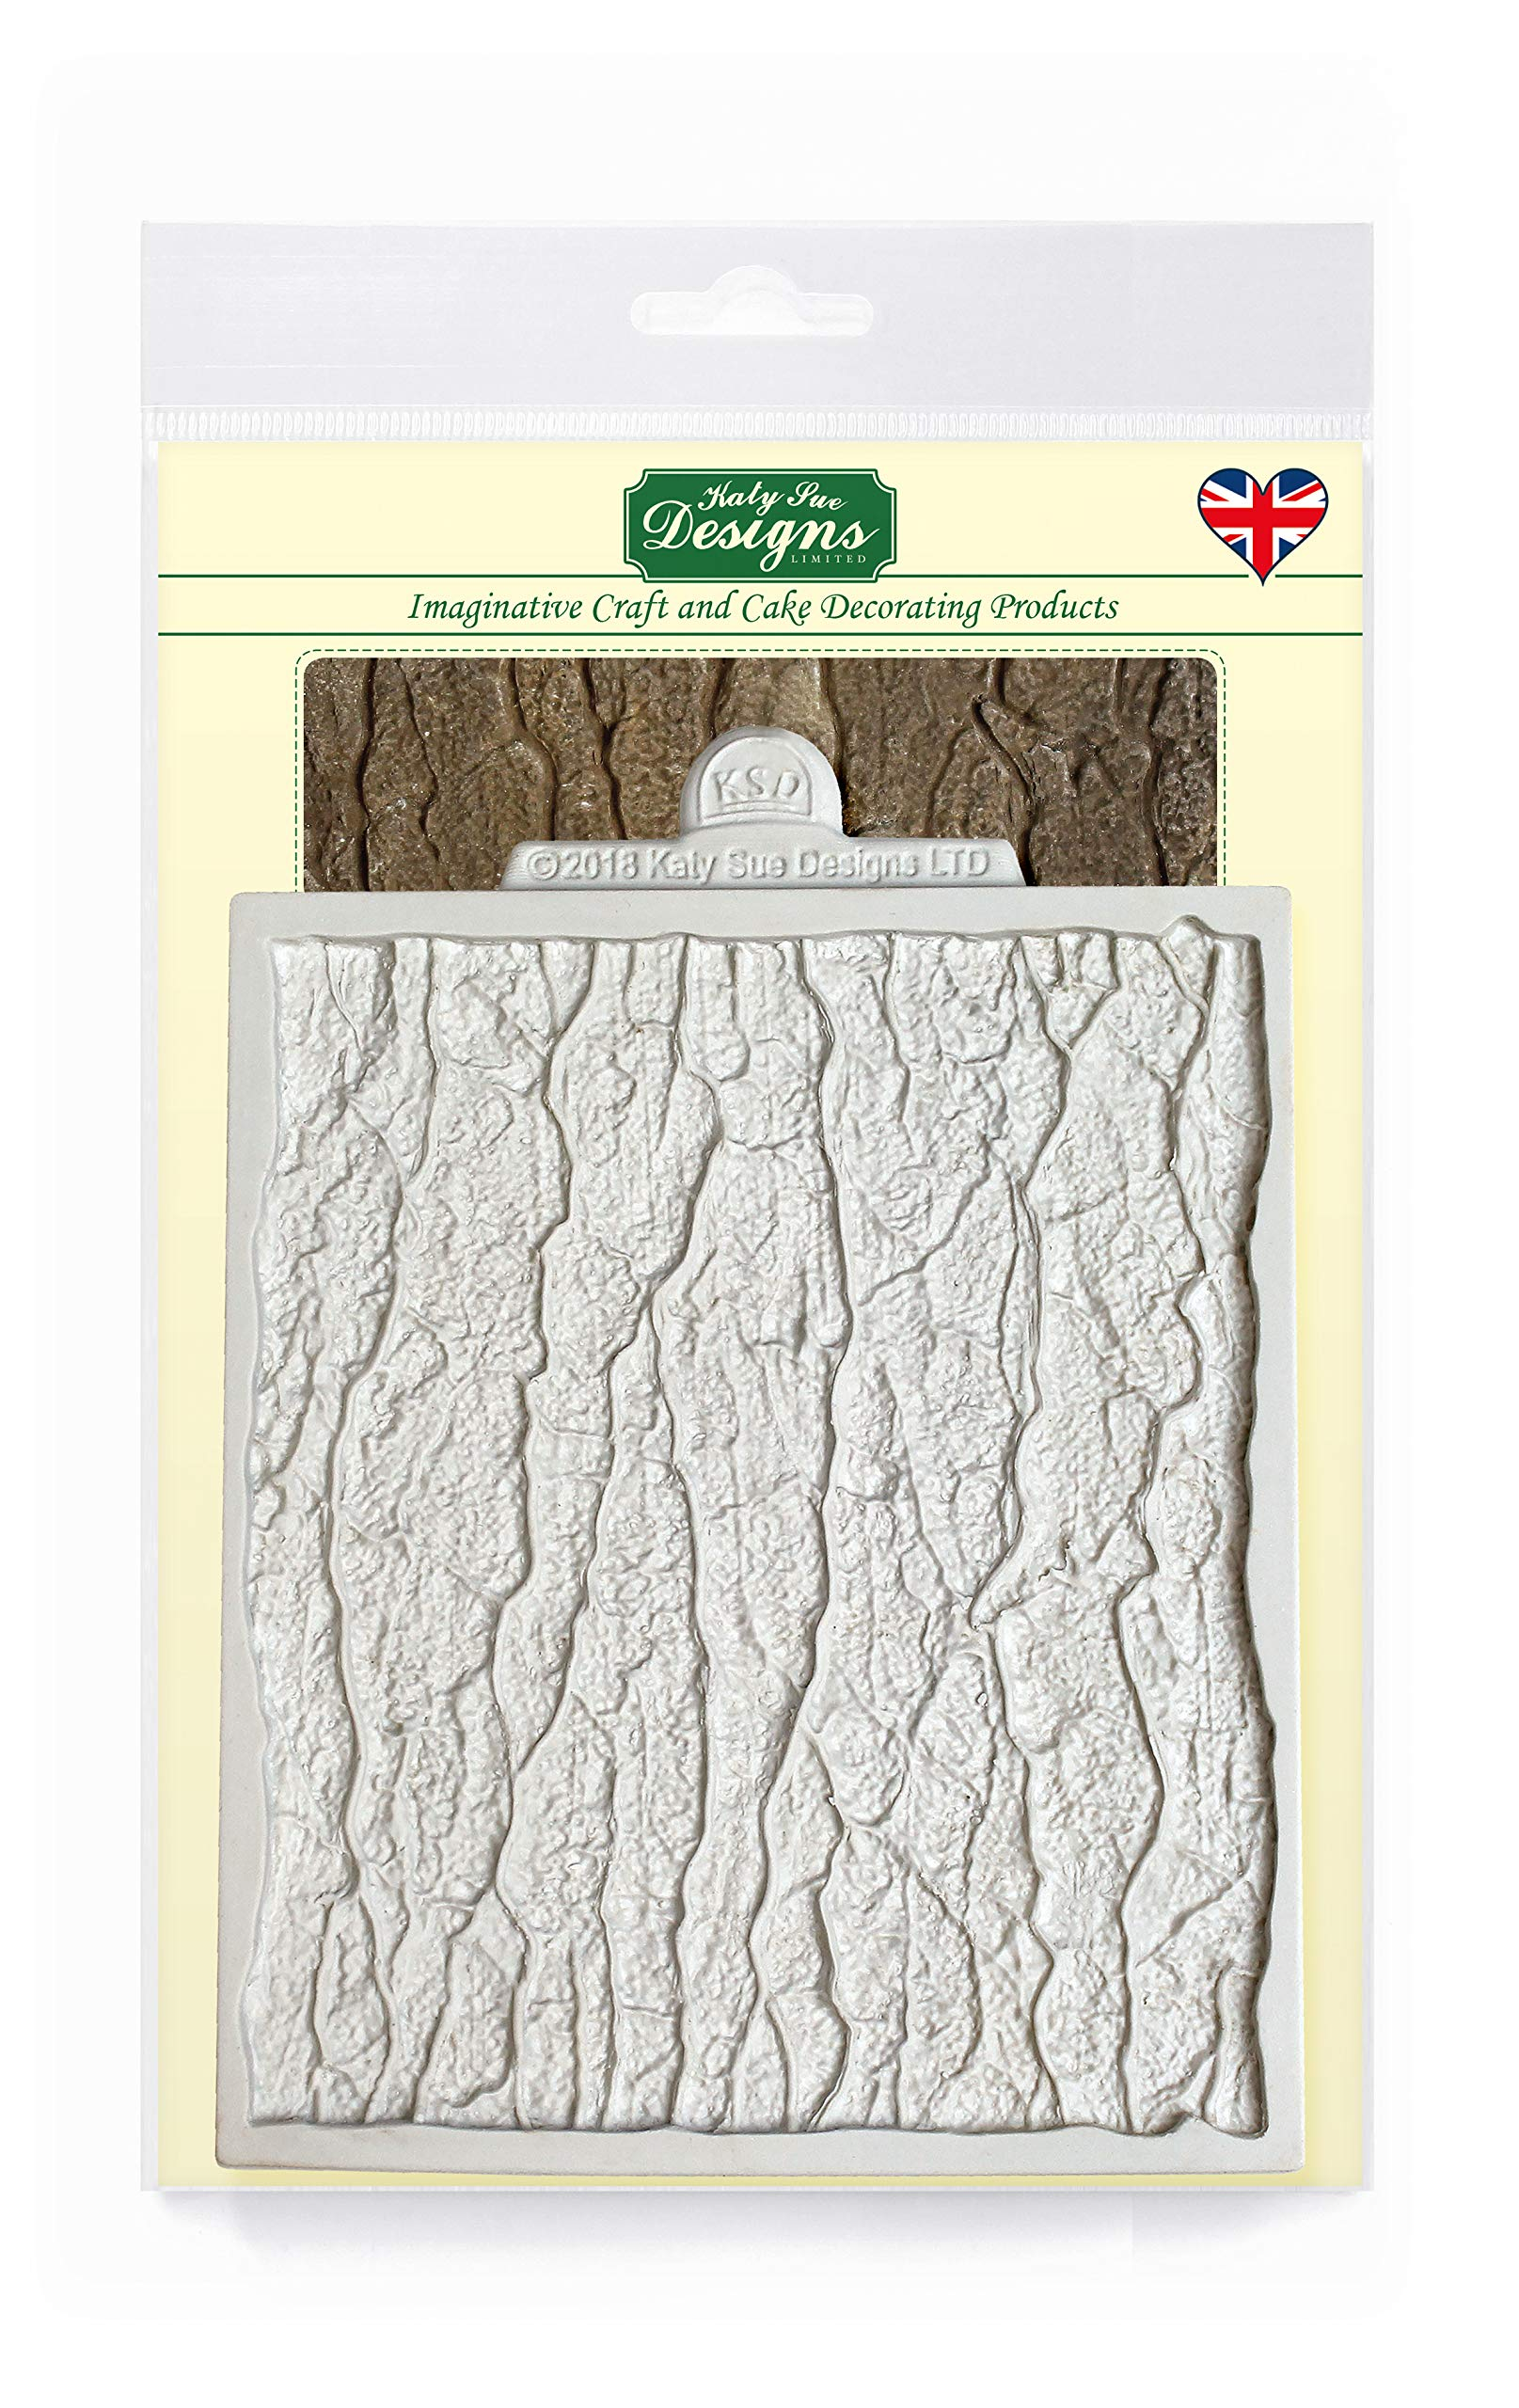 Katy Sue Designs Continuous Tree Bark Silicone Mold for Cake Decorating, Cupcakes, Sugarcraft, Candies, Clay, Crafts and Card Making, Food Safe